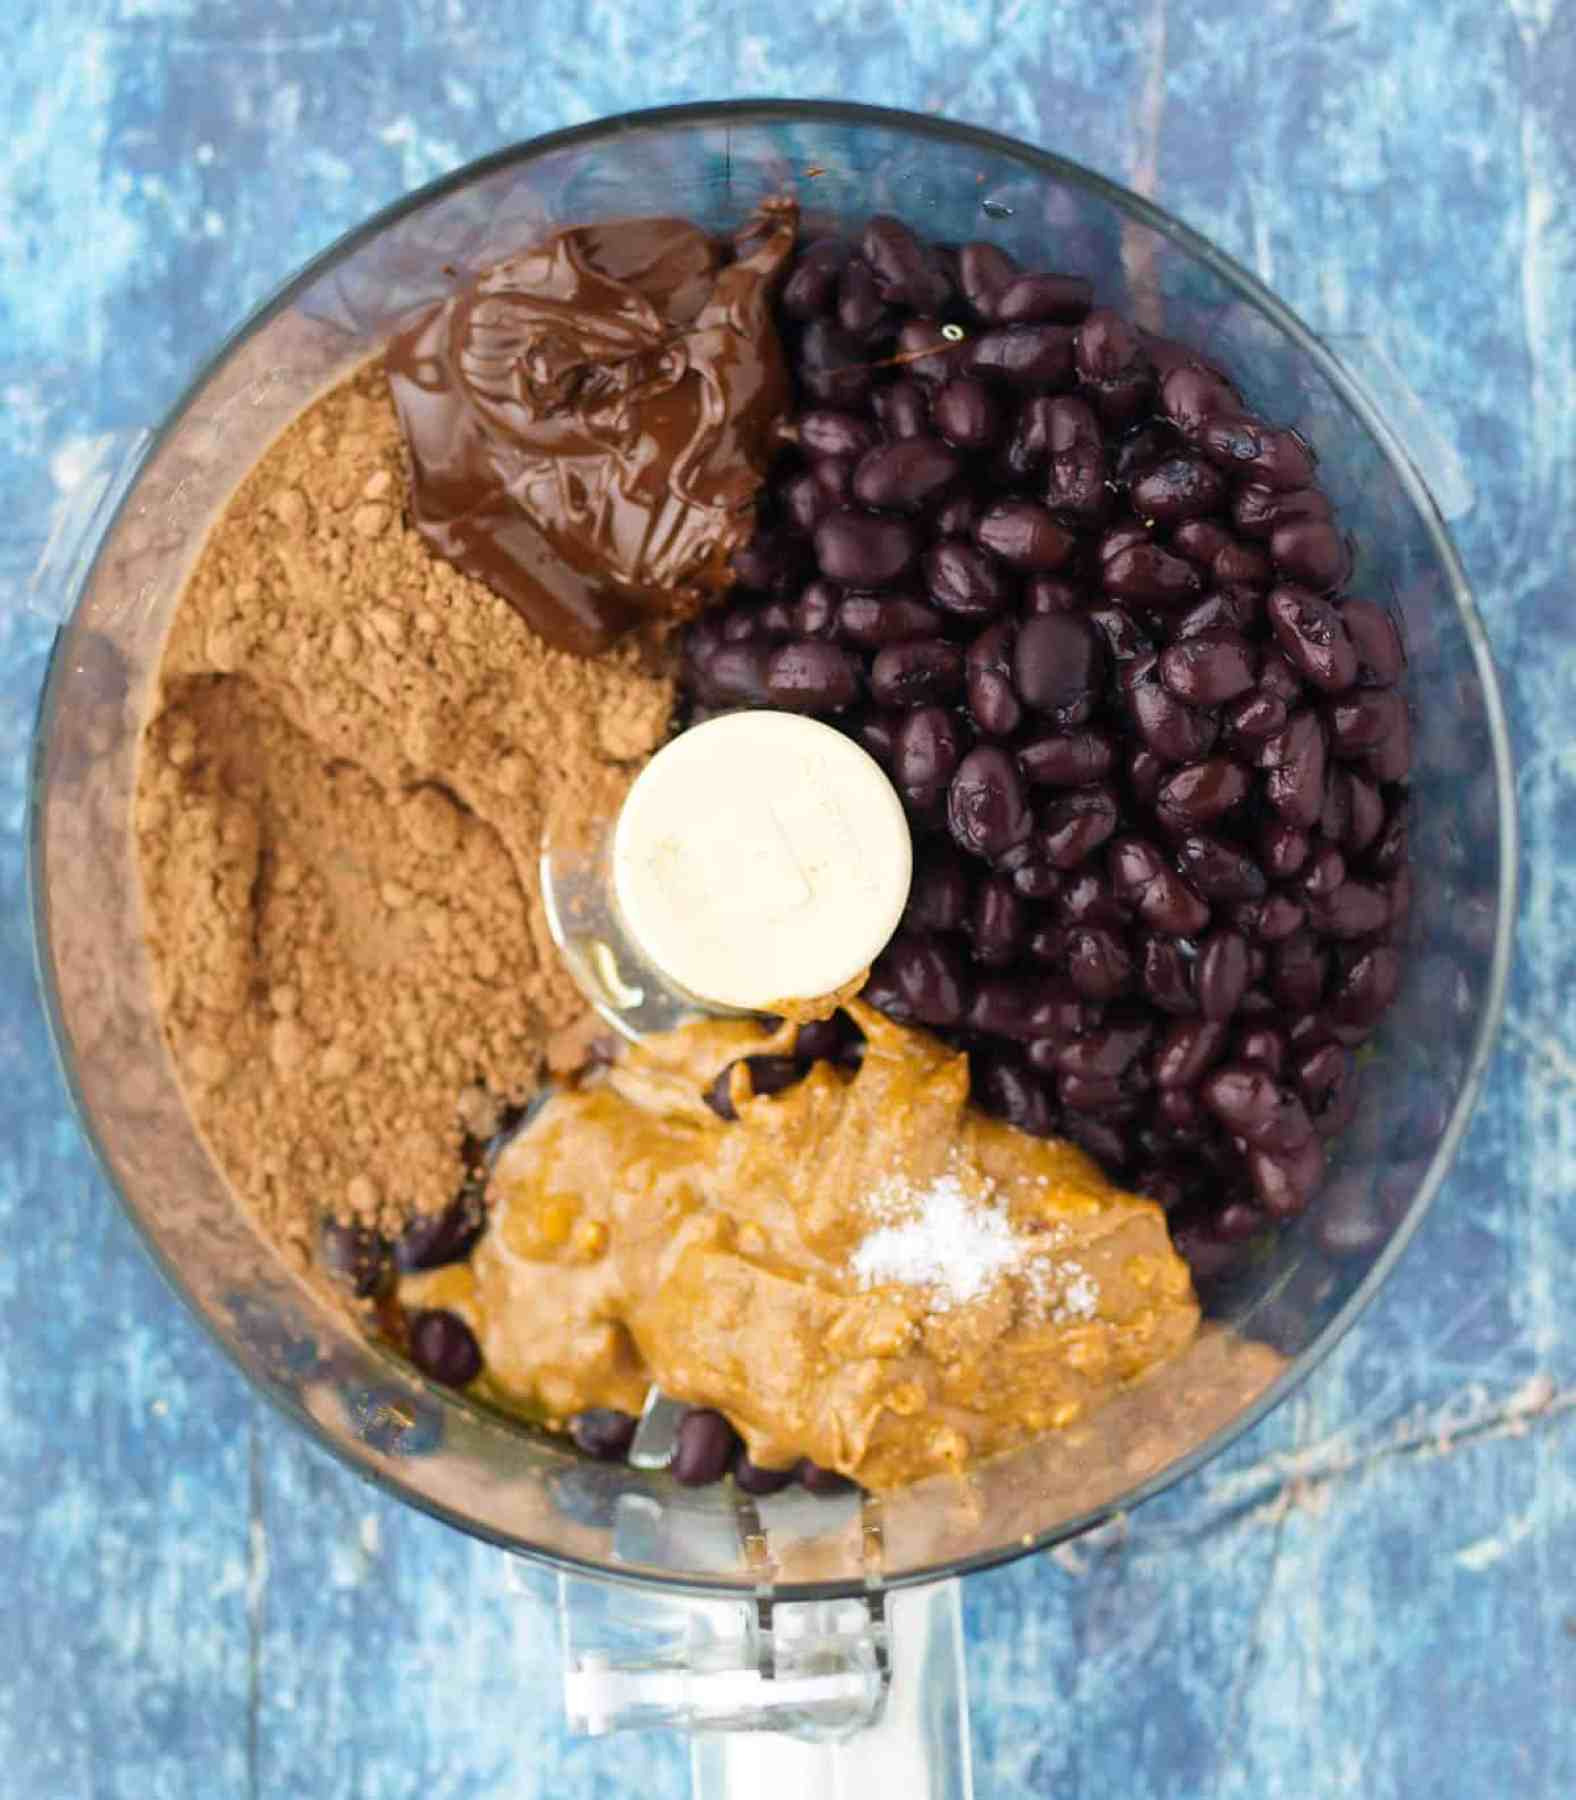 A food processor bowl full of ingredients for Chocolate Hummus.